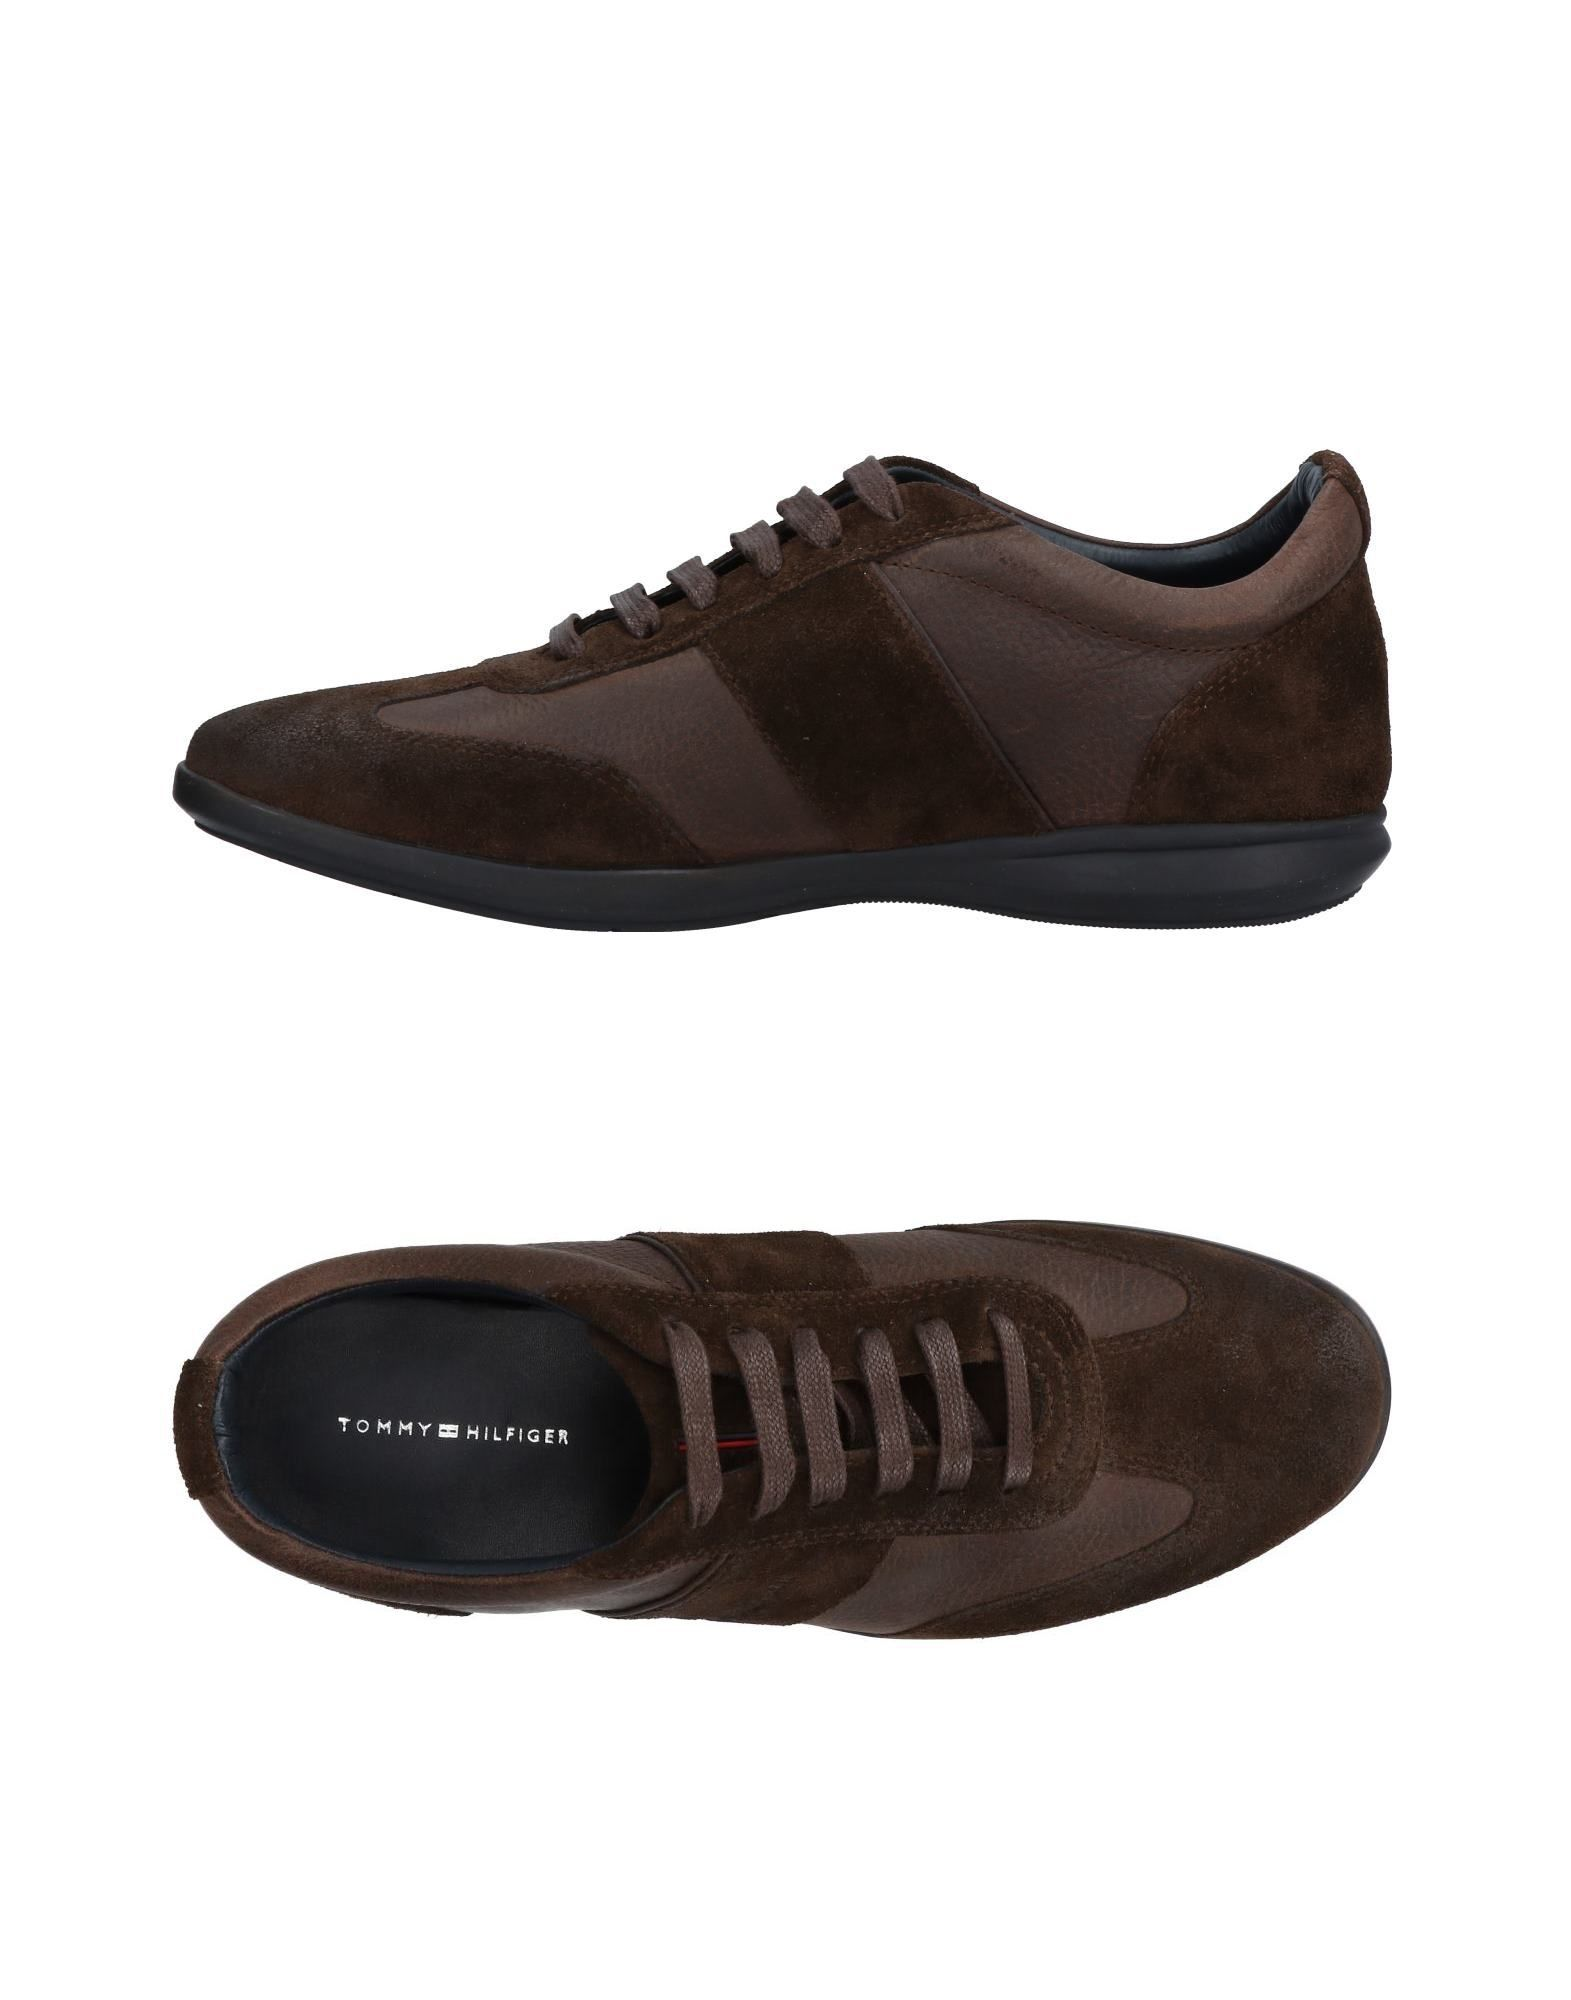 Sneakers Tommy Hilfiger Uomo - 11393548PG